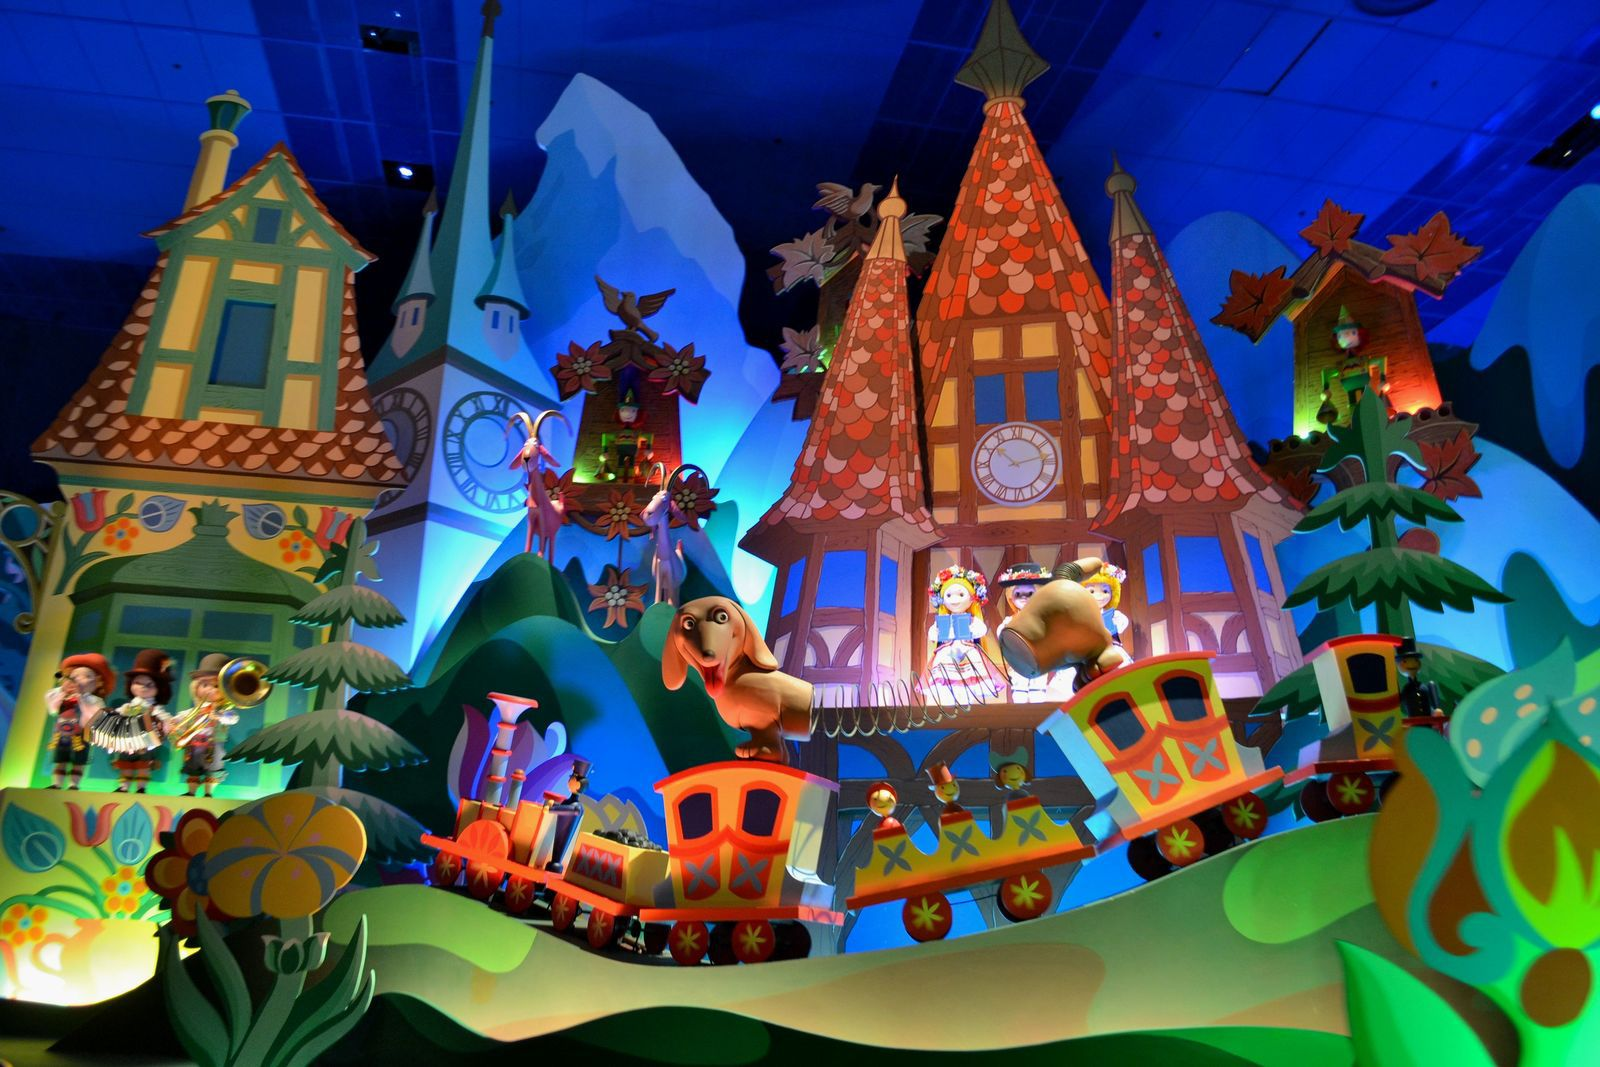 It's a Small World, after all...